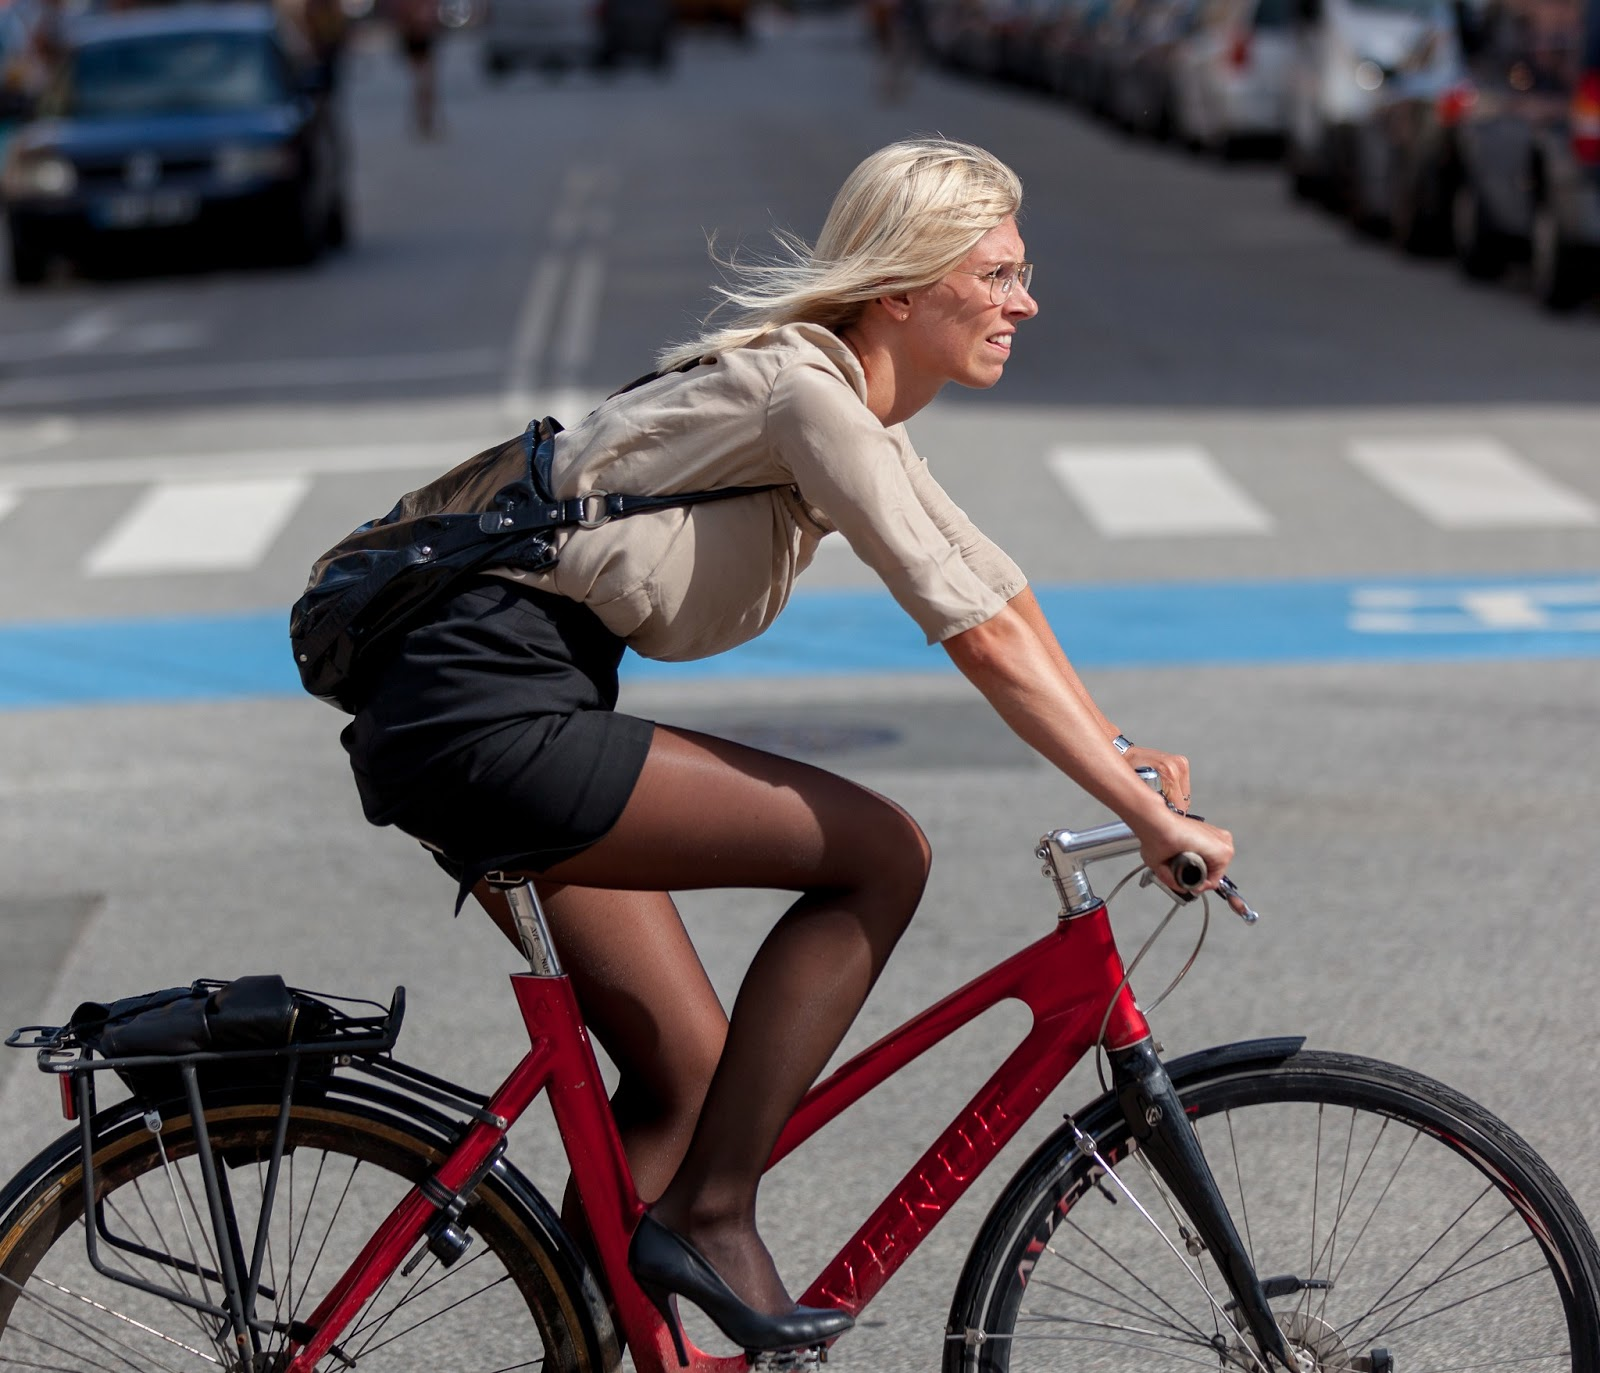 Foreign Woman Bike 46